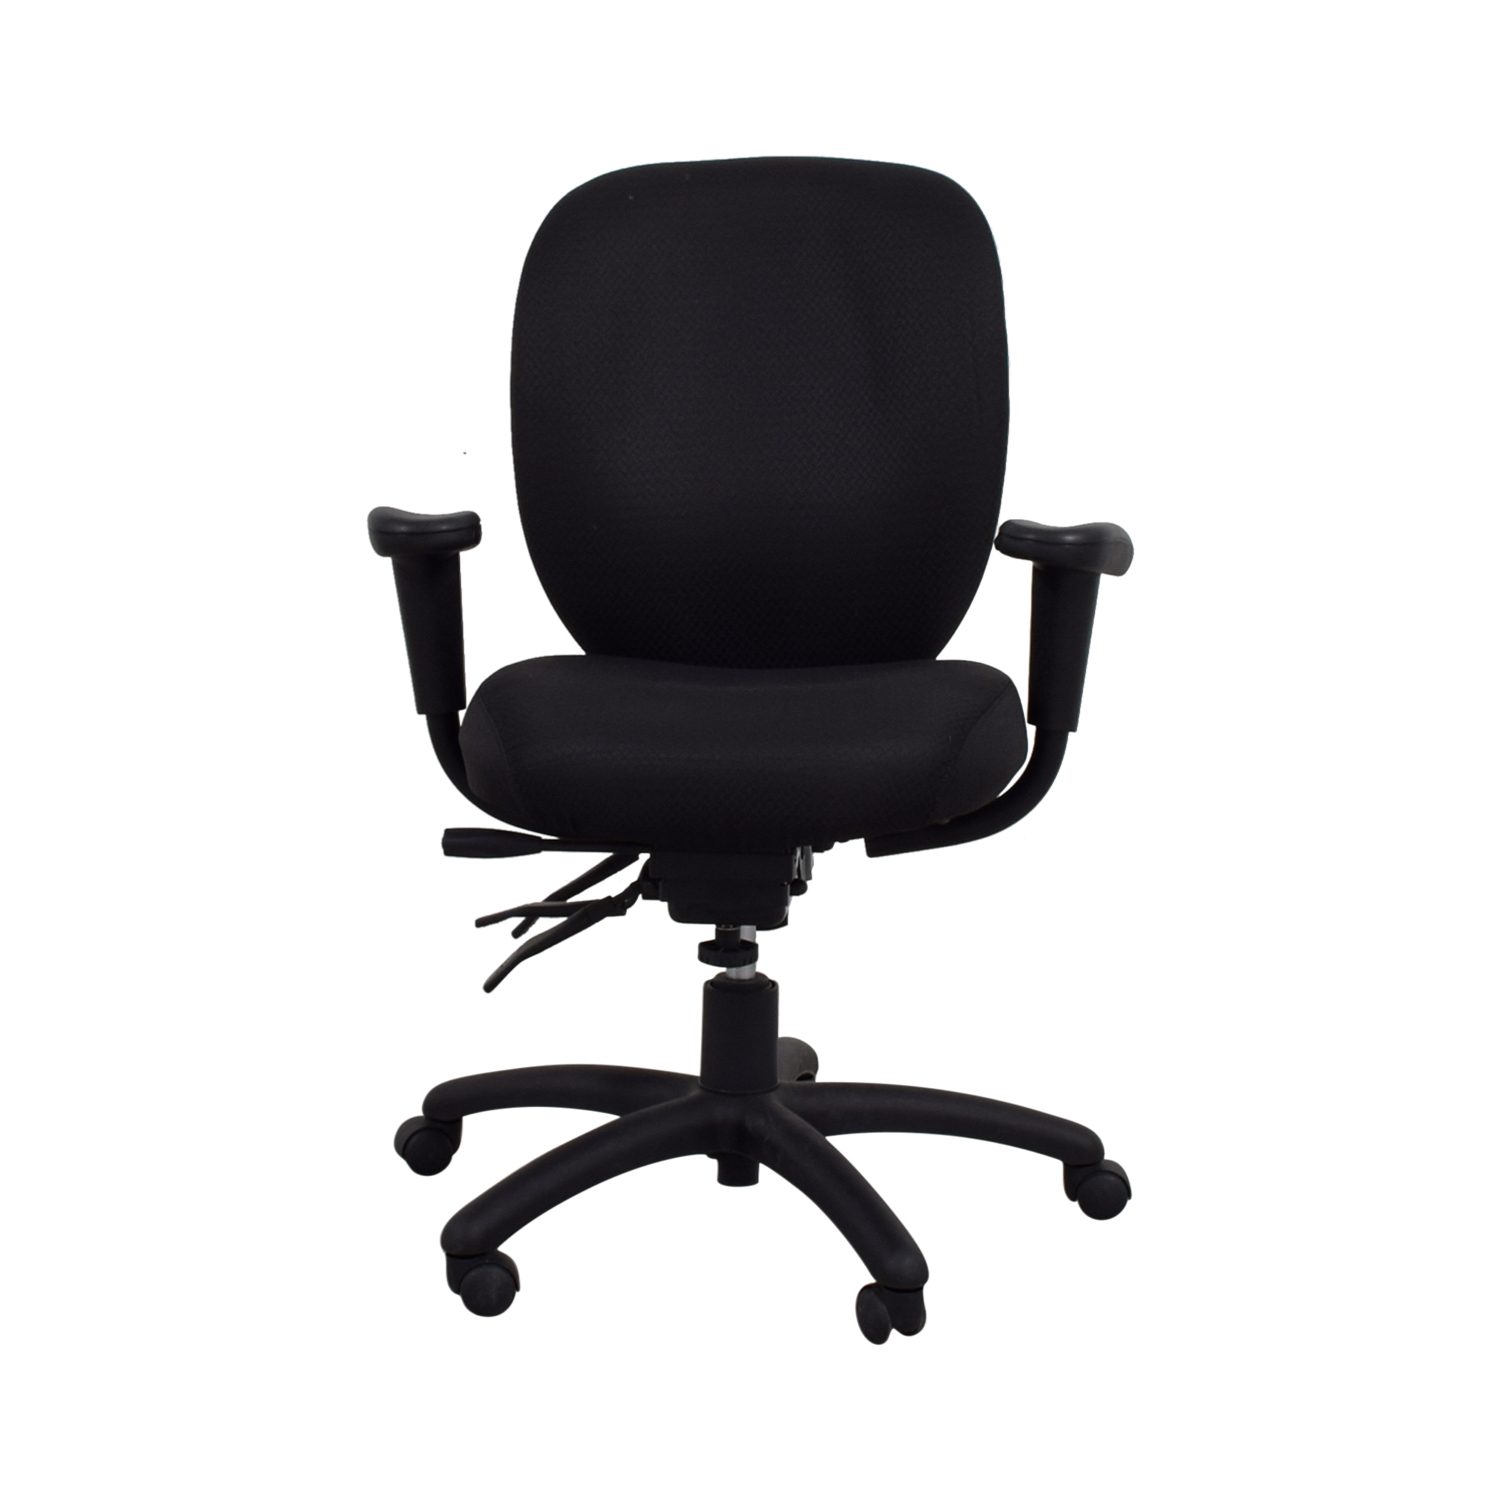 Black Office Chairs 90 Off Offices To Go Offices To Go Black Quilt Office